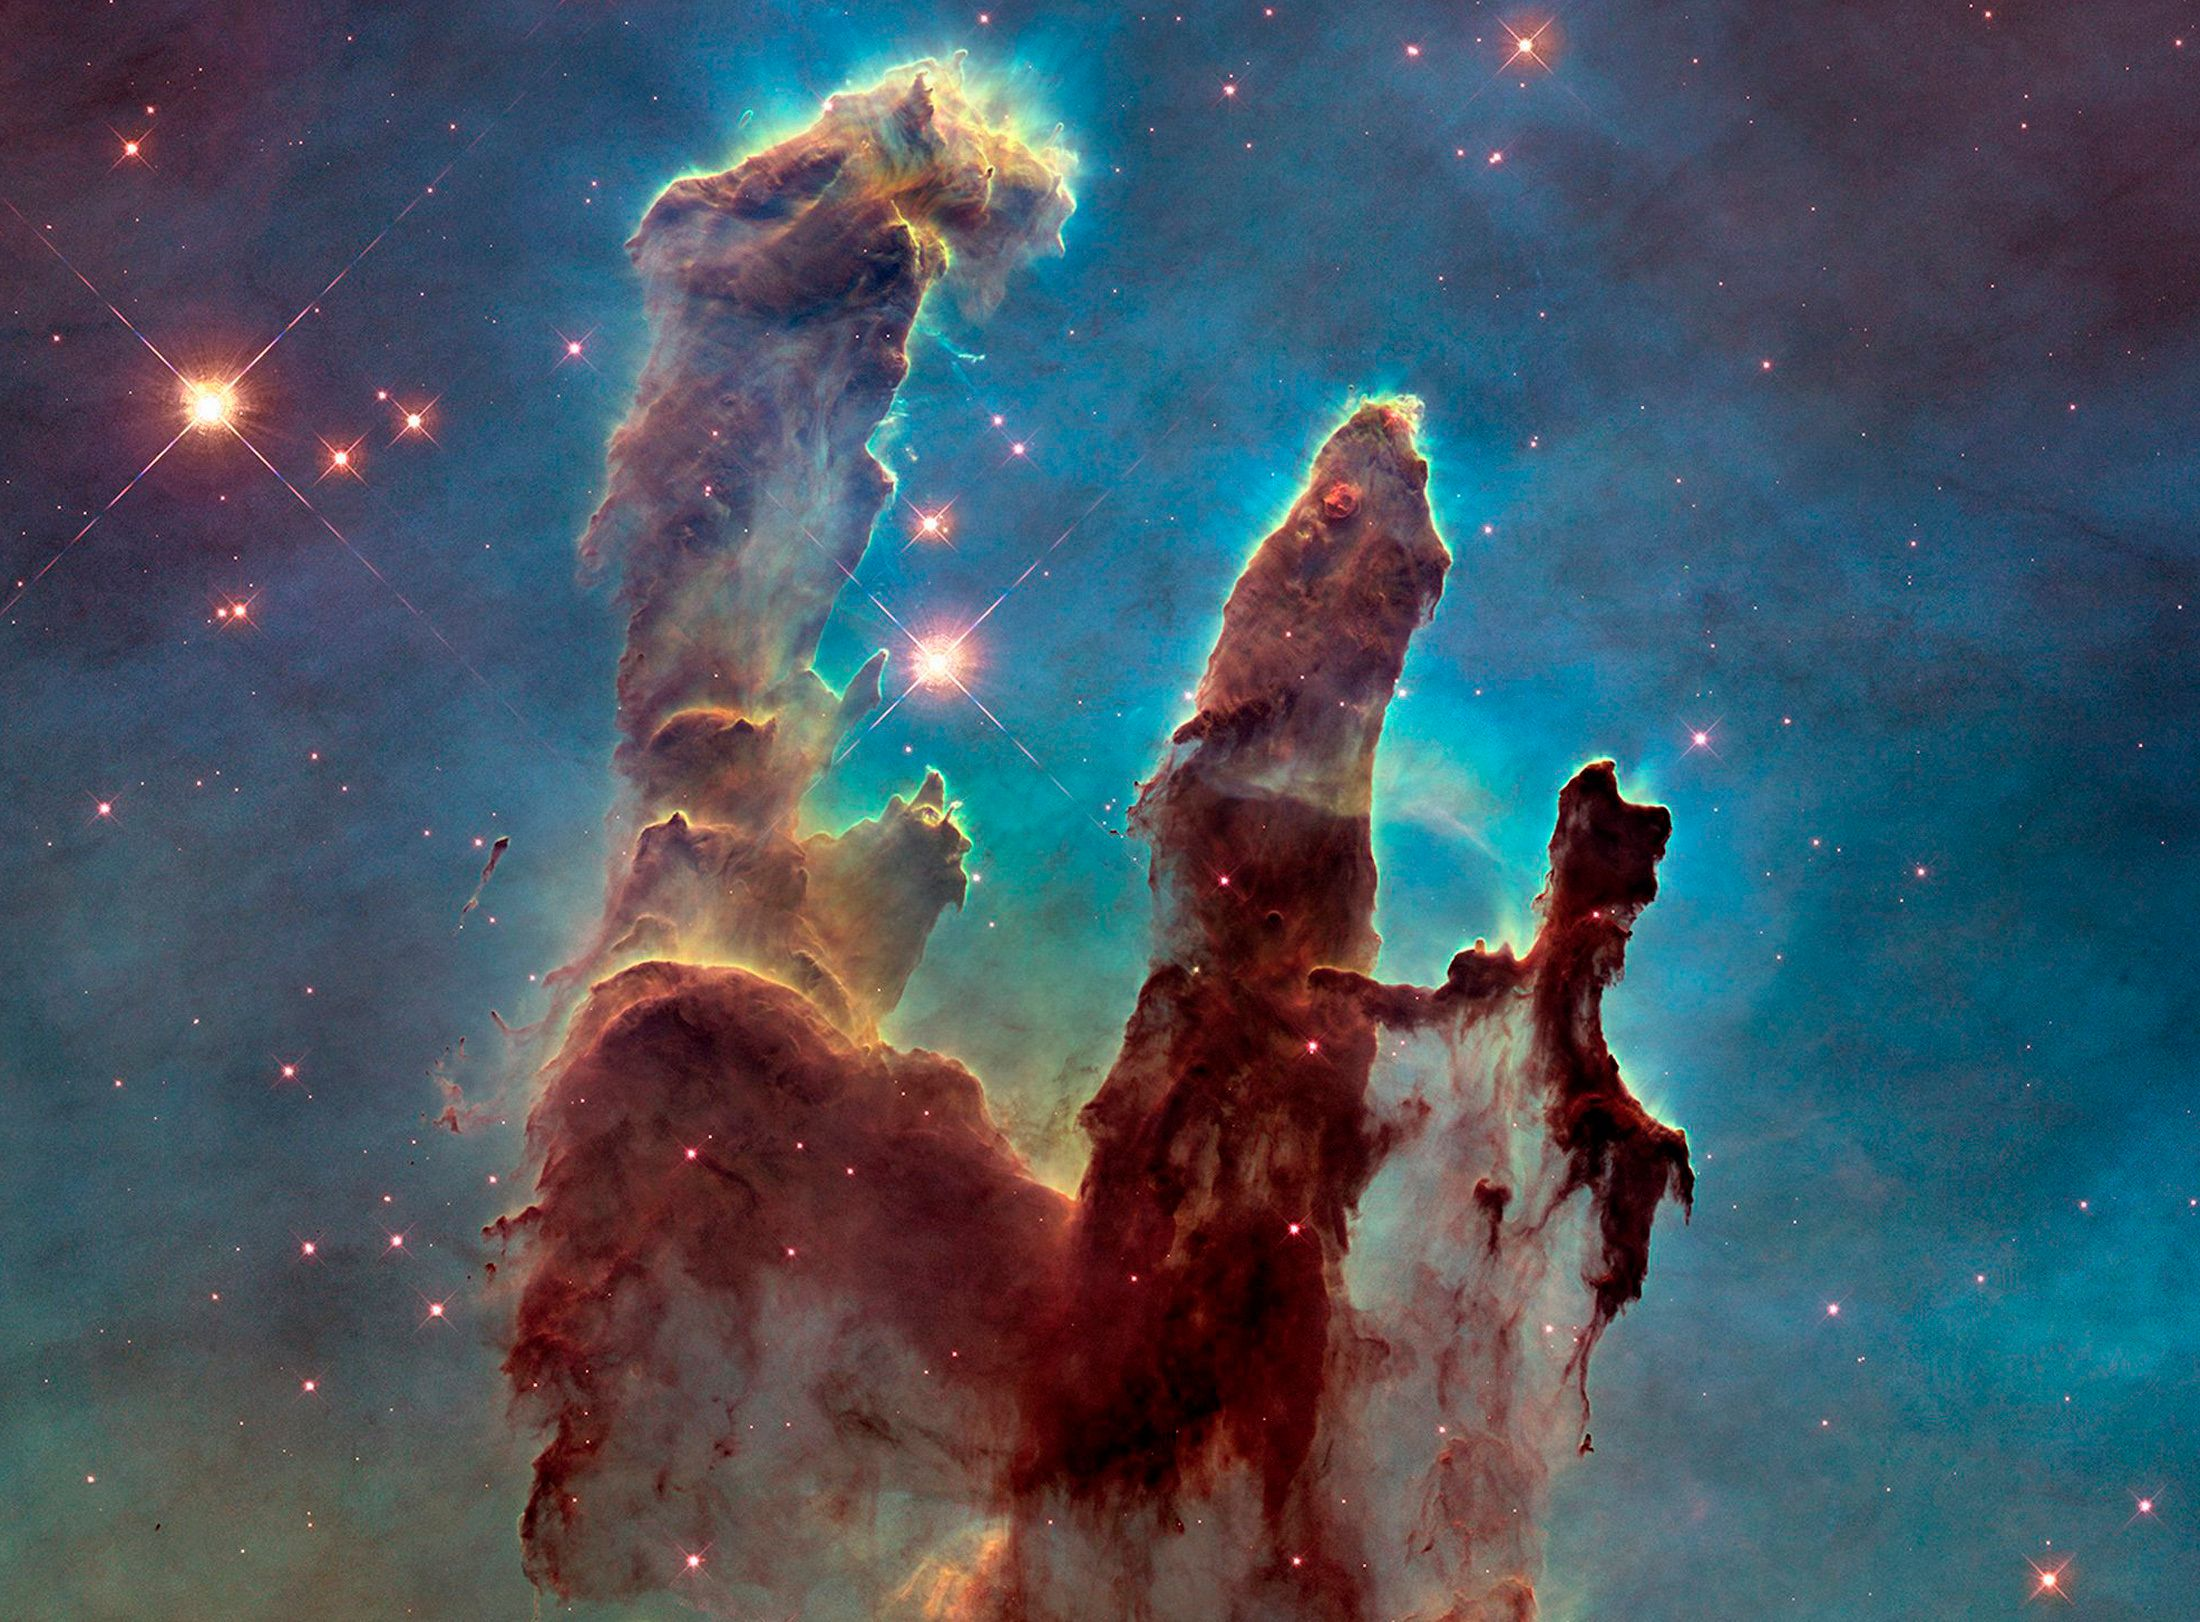 "A Hubble telescope photograph of the iconic Eagle Nebula's ""Pillars of Creation"" is seen in this NASA image released January 6, 2015. By comparing 1995 and 2014 pictures, astronomers noticed a lengthening of a narrow jet-like feature that may have been ejected from a newly forming star. Over the intervening 19 years, this jet has stretched farther into space, across an additional 60 billion miles, at an estimated speed of about 450,000 miles per hour, according to a NASA news release.  REUTERS/NASA/ESA/Hubble Heritage Team/Handout via Reuters   (OUTER SPACE - Tags: SCIENCE TECHNOLOGY) THIS IMAGE HAS BEEN SUPPLIED BY A THIRD PARTY. IT IS DISTRIBUTED, EXACTLY AS RECEIVED BY REUTERS, AS A SERVICE TO CLIENTS. FOR EDITORIAL USE ONLY. NOT FOR SALE FOR MARKETING OR ADVERTISING CAMPAIGNS"